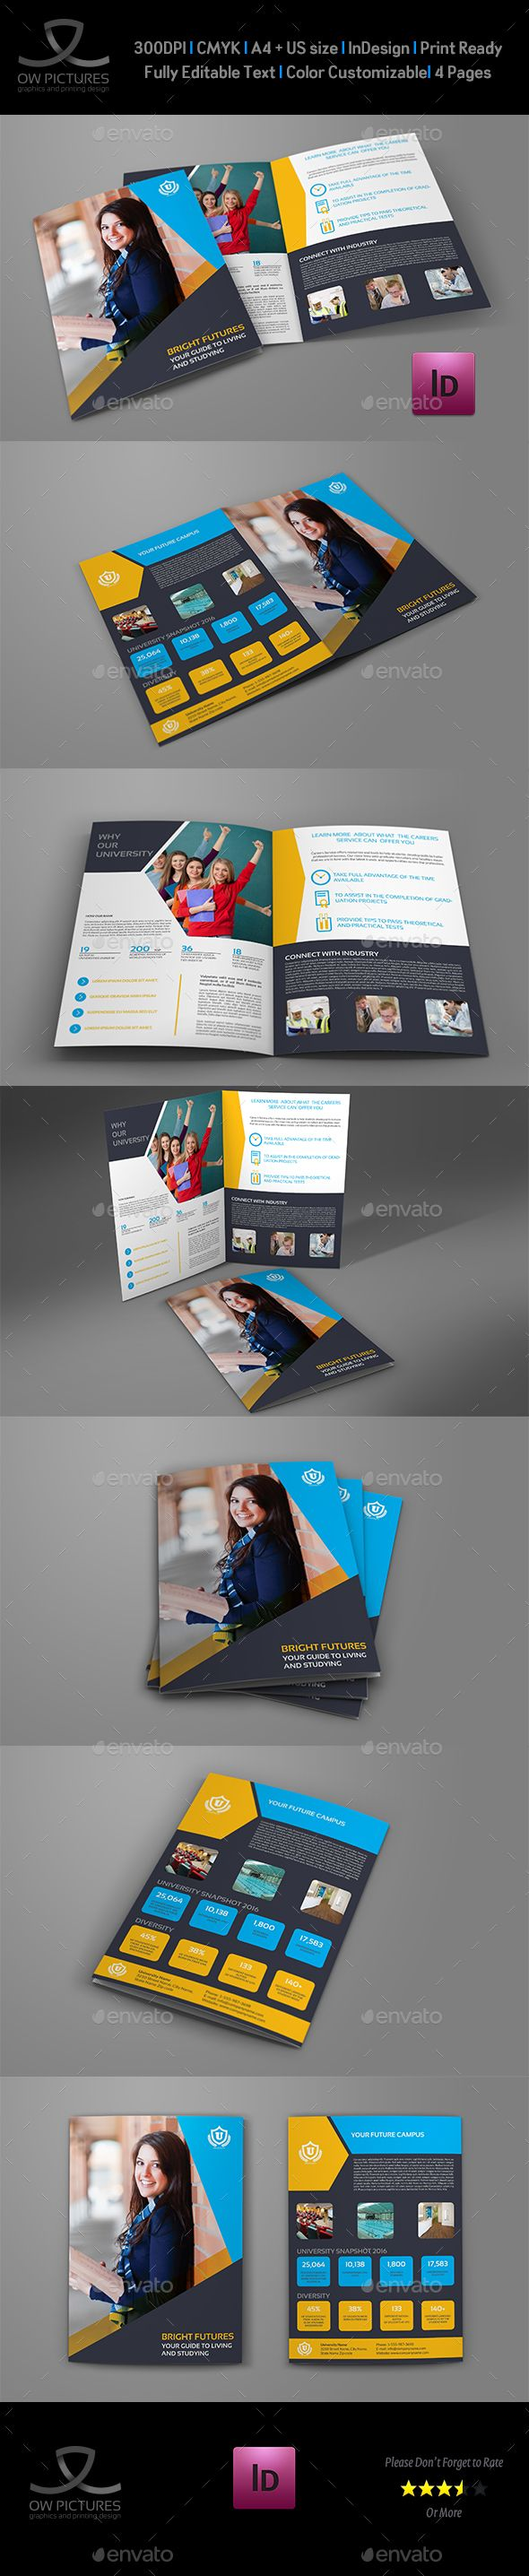 University  College BiFold Brochure Template  Brochure Template